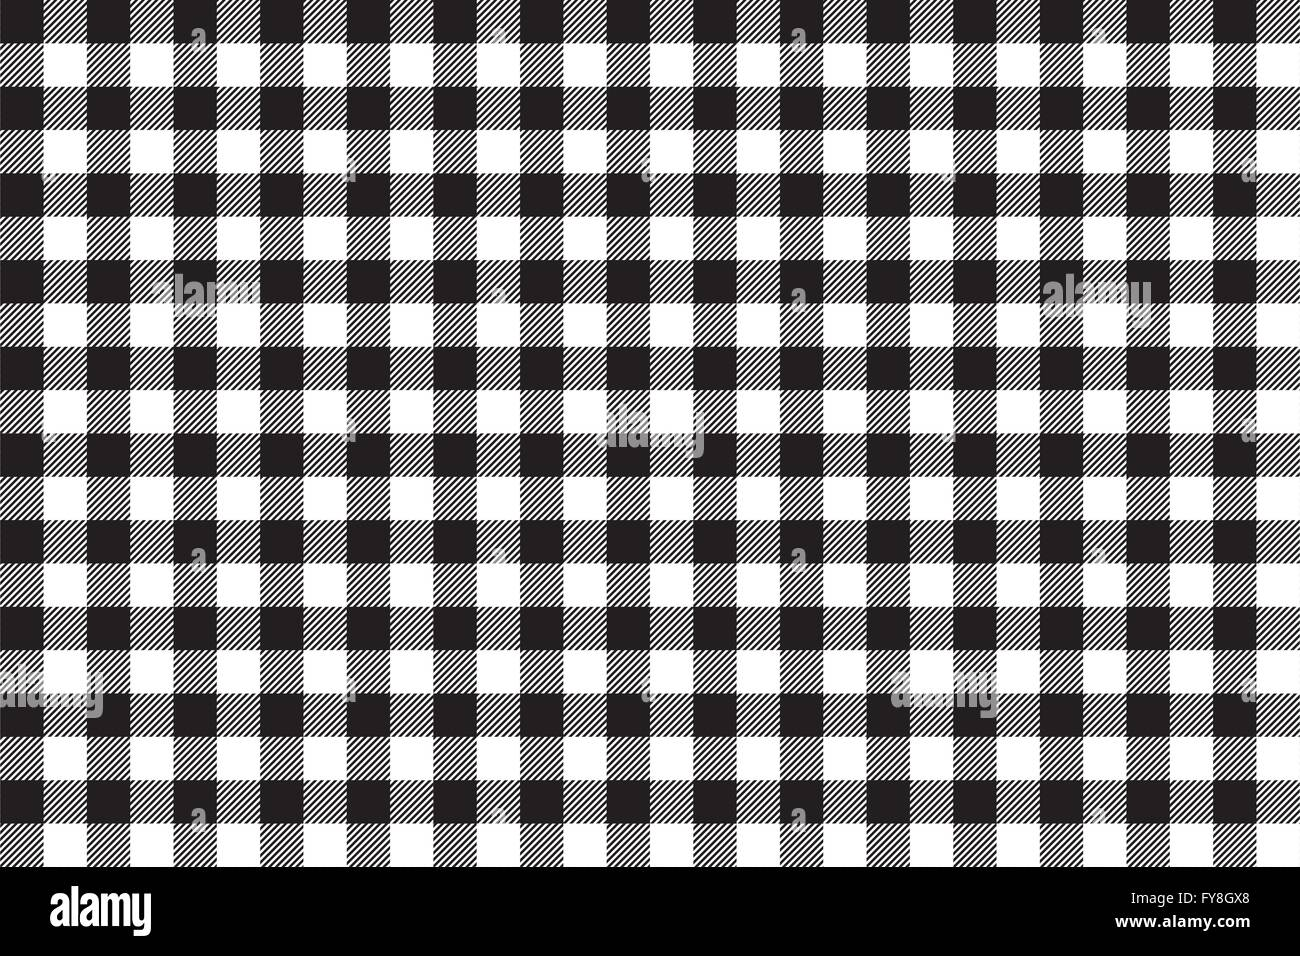 Tablecloth Background Black Seamless Pattern. Vector Illustration Of  Traditional Gingham Dining Cloth With Fabric Texture. Check